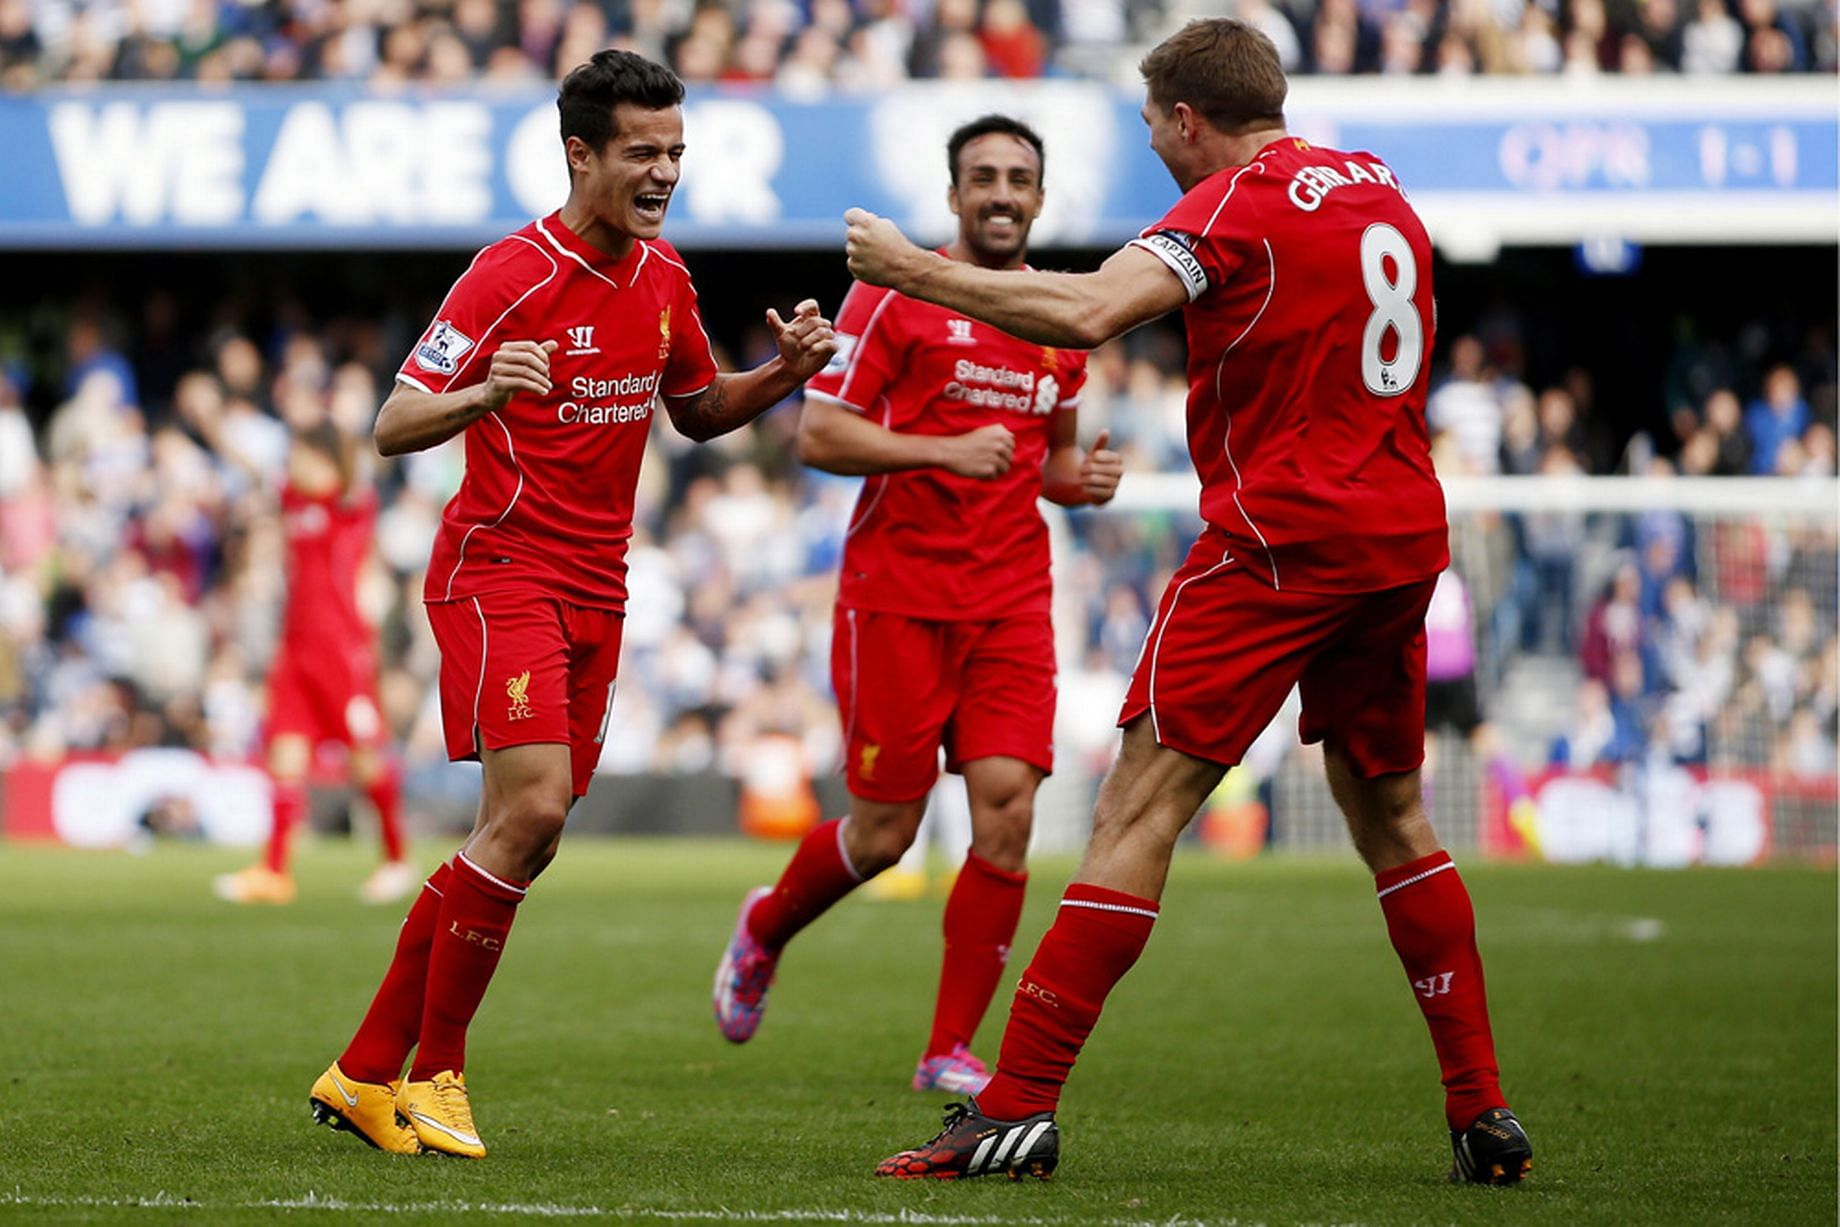 Liverpool vs QPR - The Reds host relegation contenders at Anfield